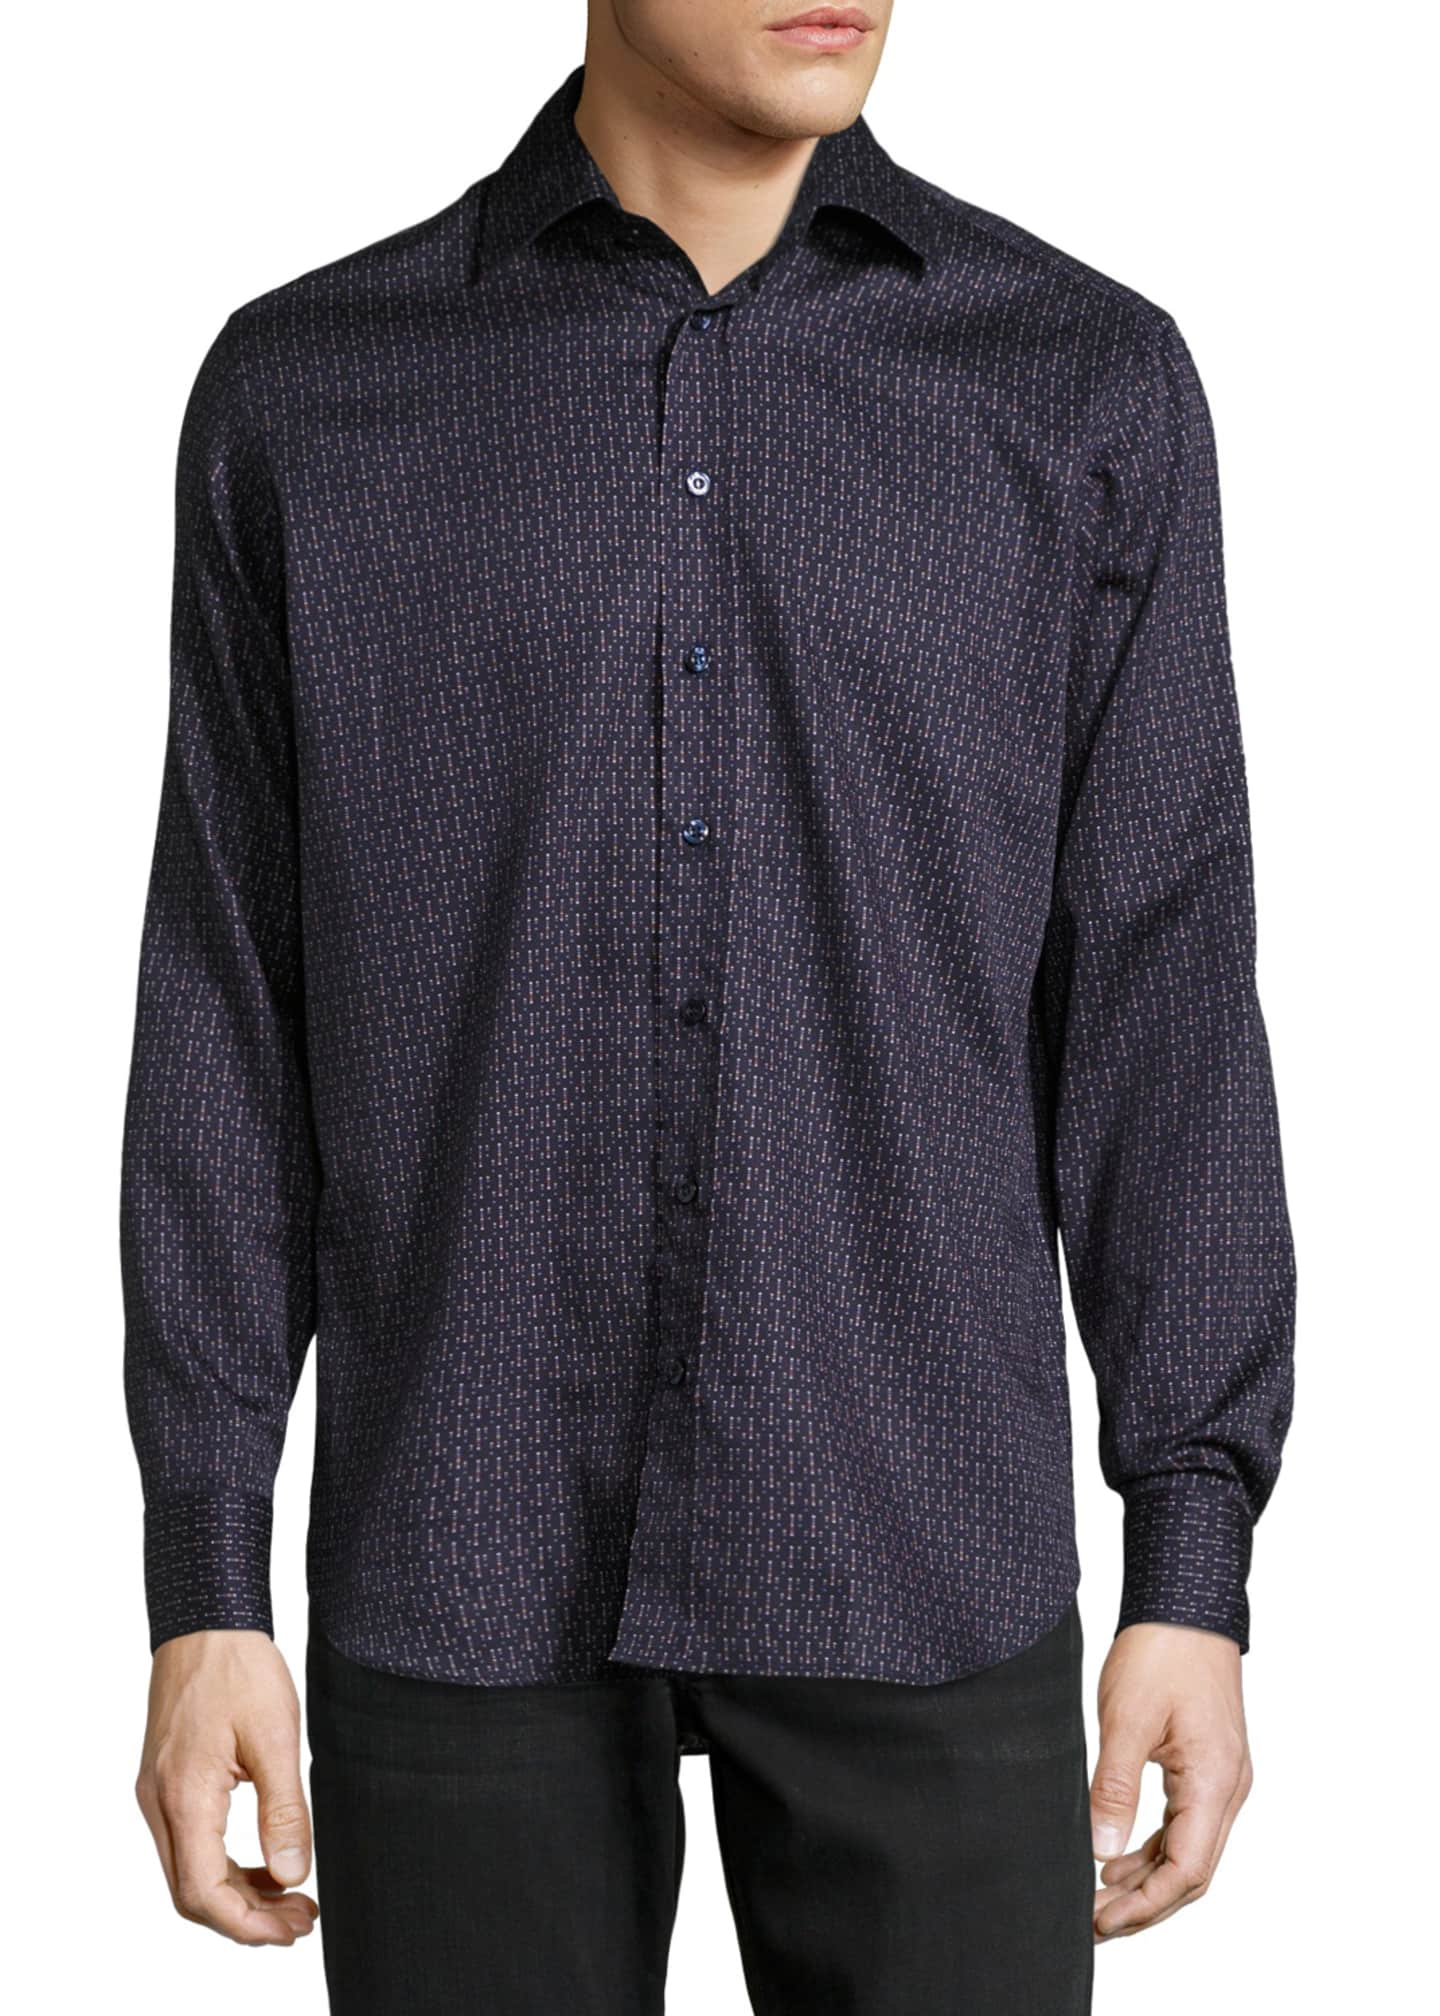 Etro Lined-Dot Cotton Shirt, Navy